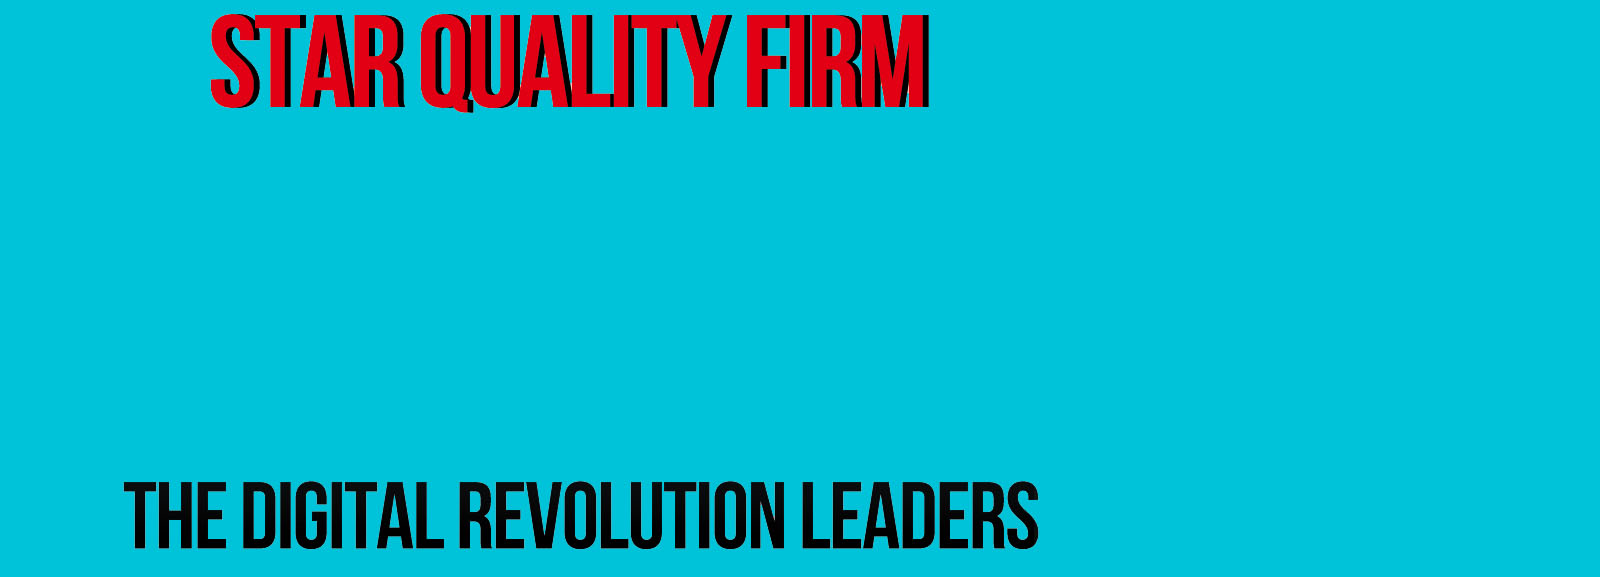 Star Quality Firm Video Banner